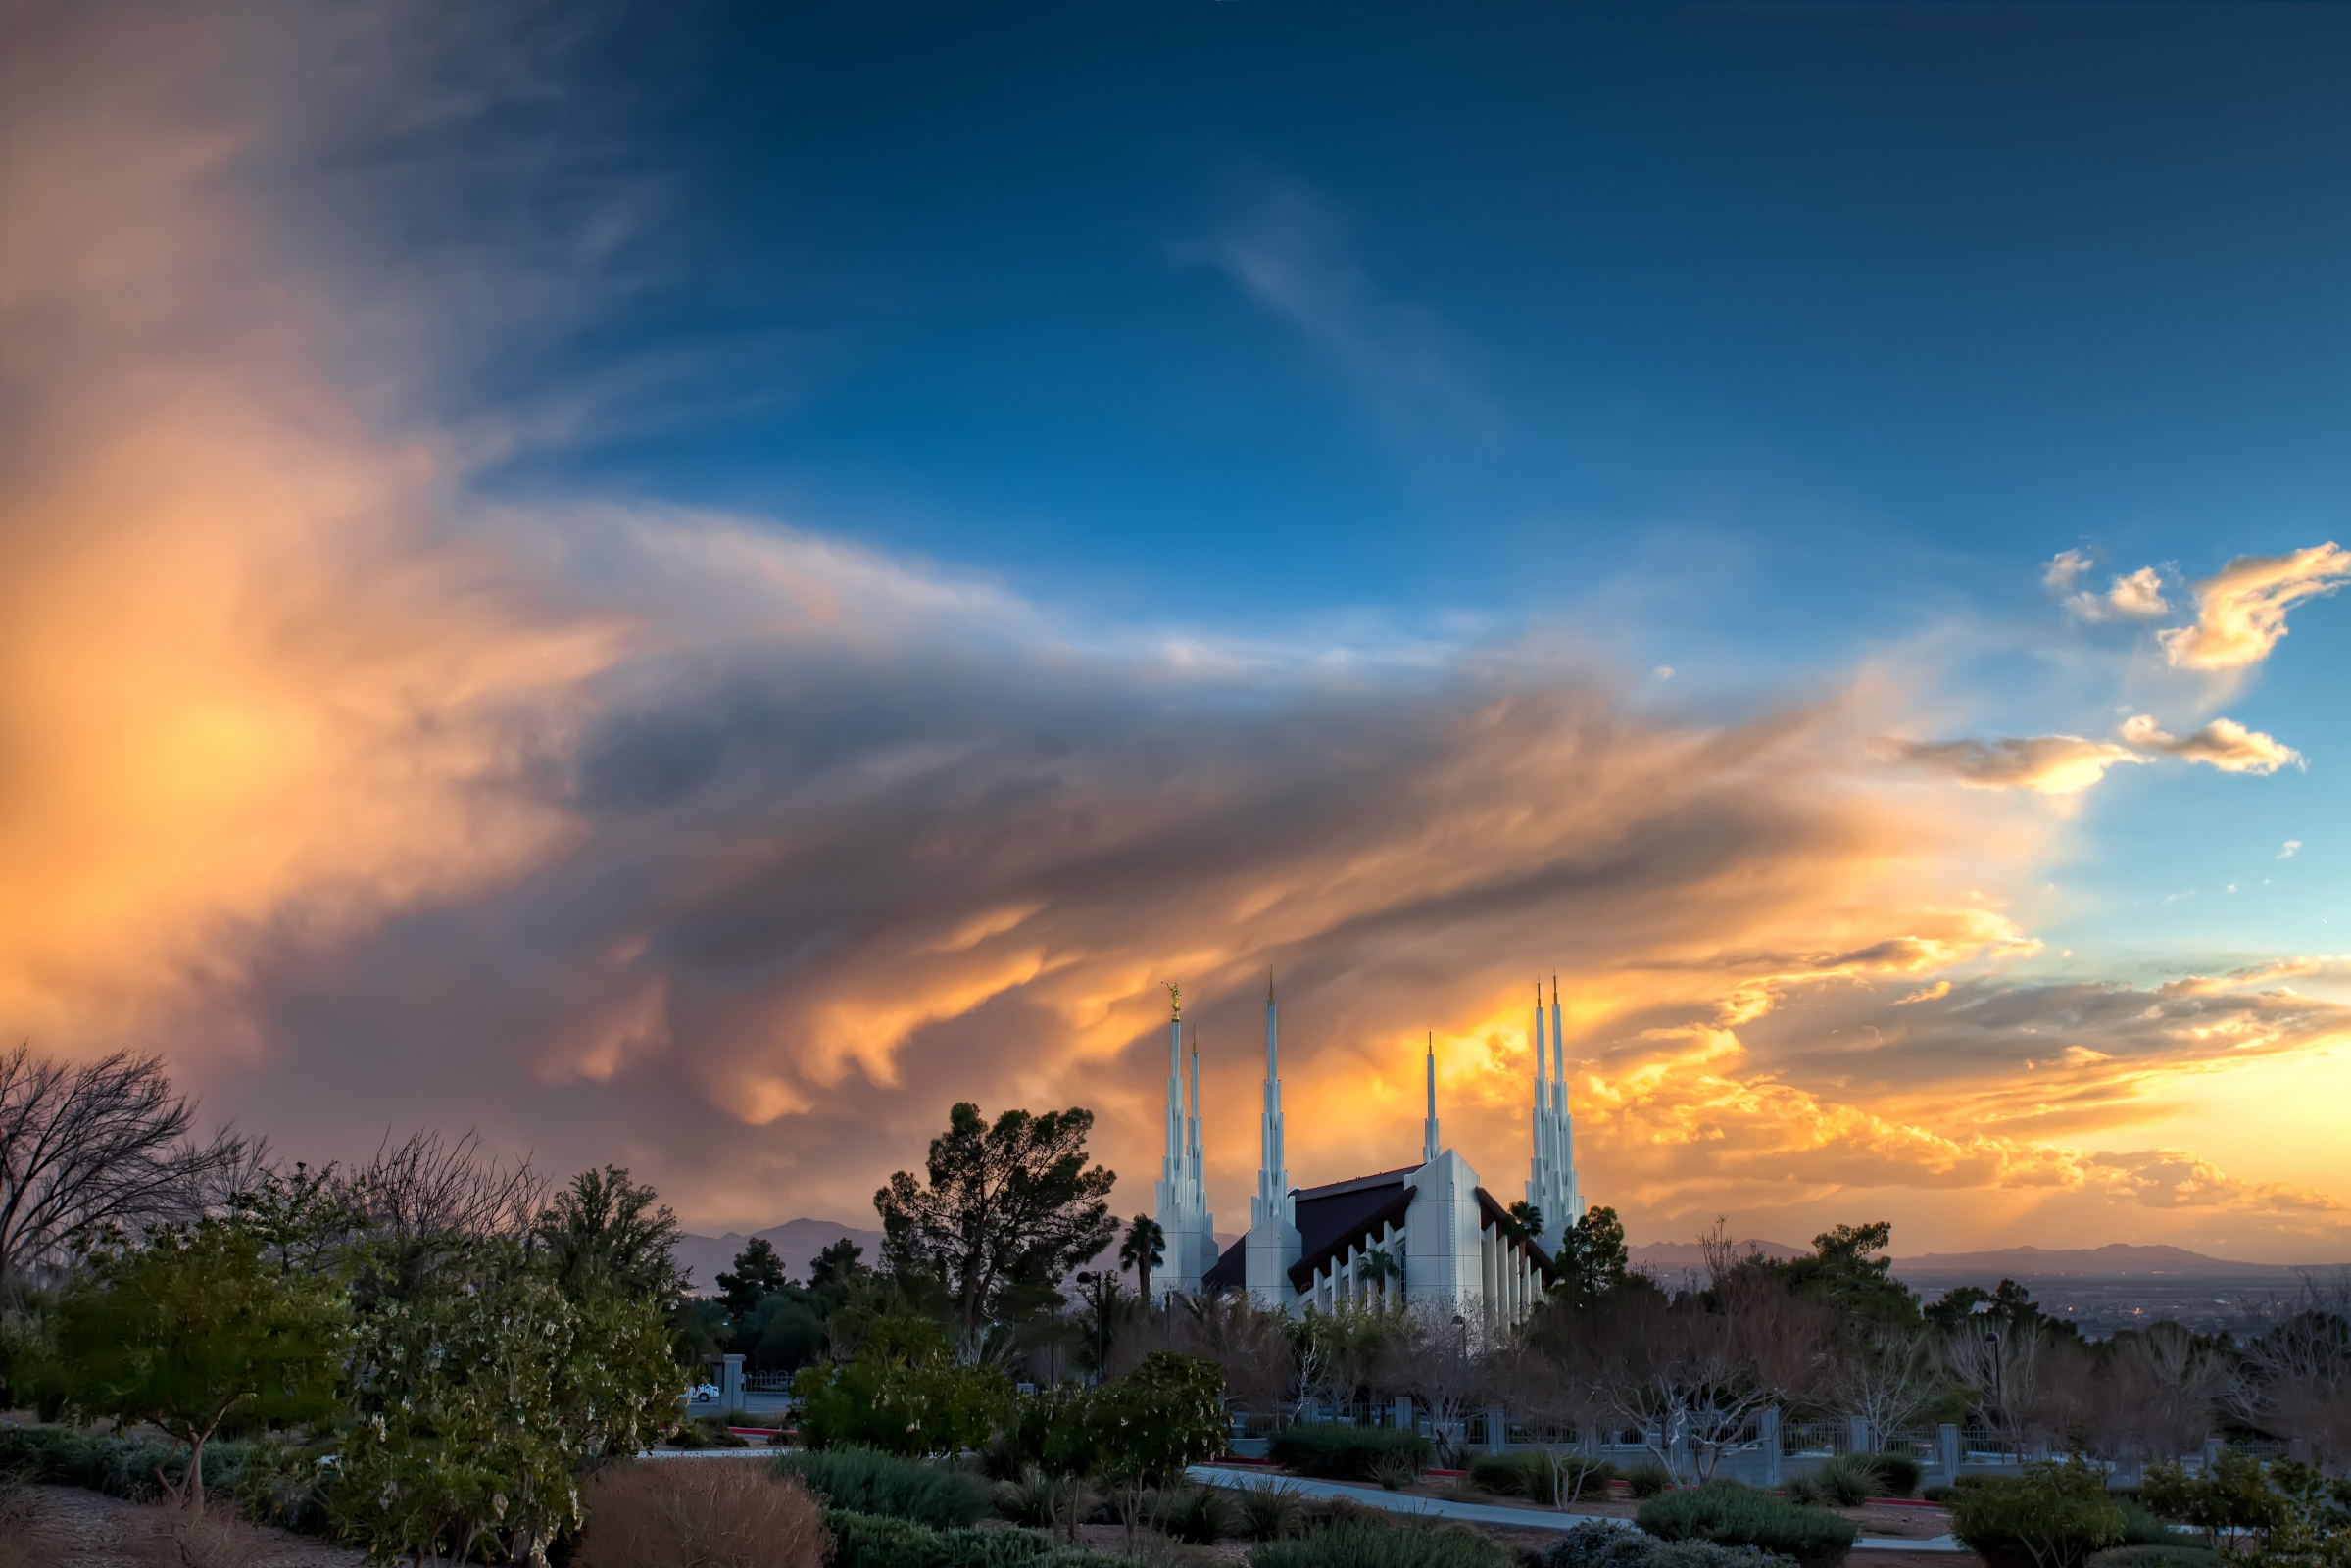 Temple Quotes Wallpaper Pc Hd Las Vegas Nevada Temple At Sunset